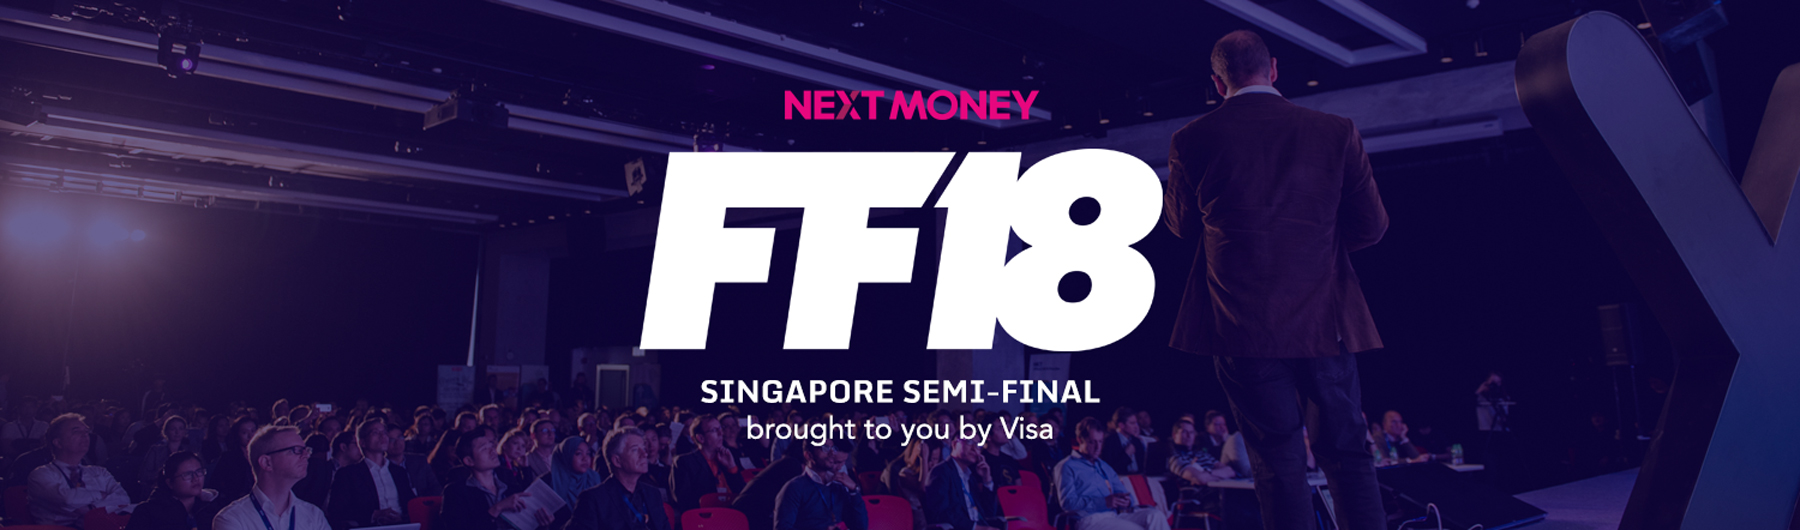 FF18 Singapore Semi-Final Fintech Pitch Competition